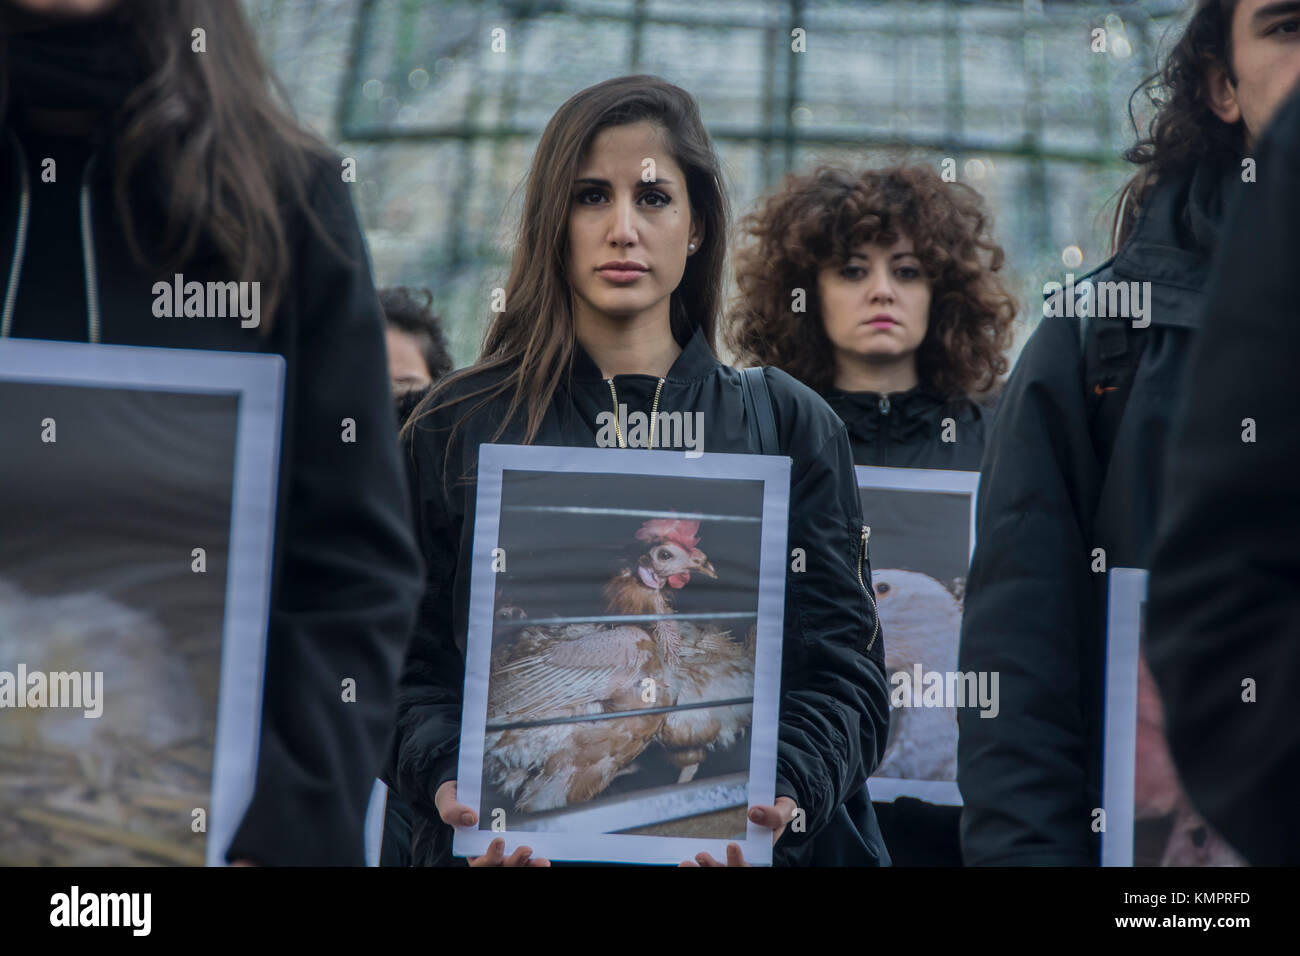 Madrid, Spain. 09th Dec, 2017. animal right demonstration in the square sol in the center of Madrid Credit: Alberto - Stock Image